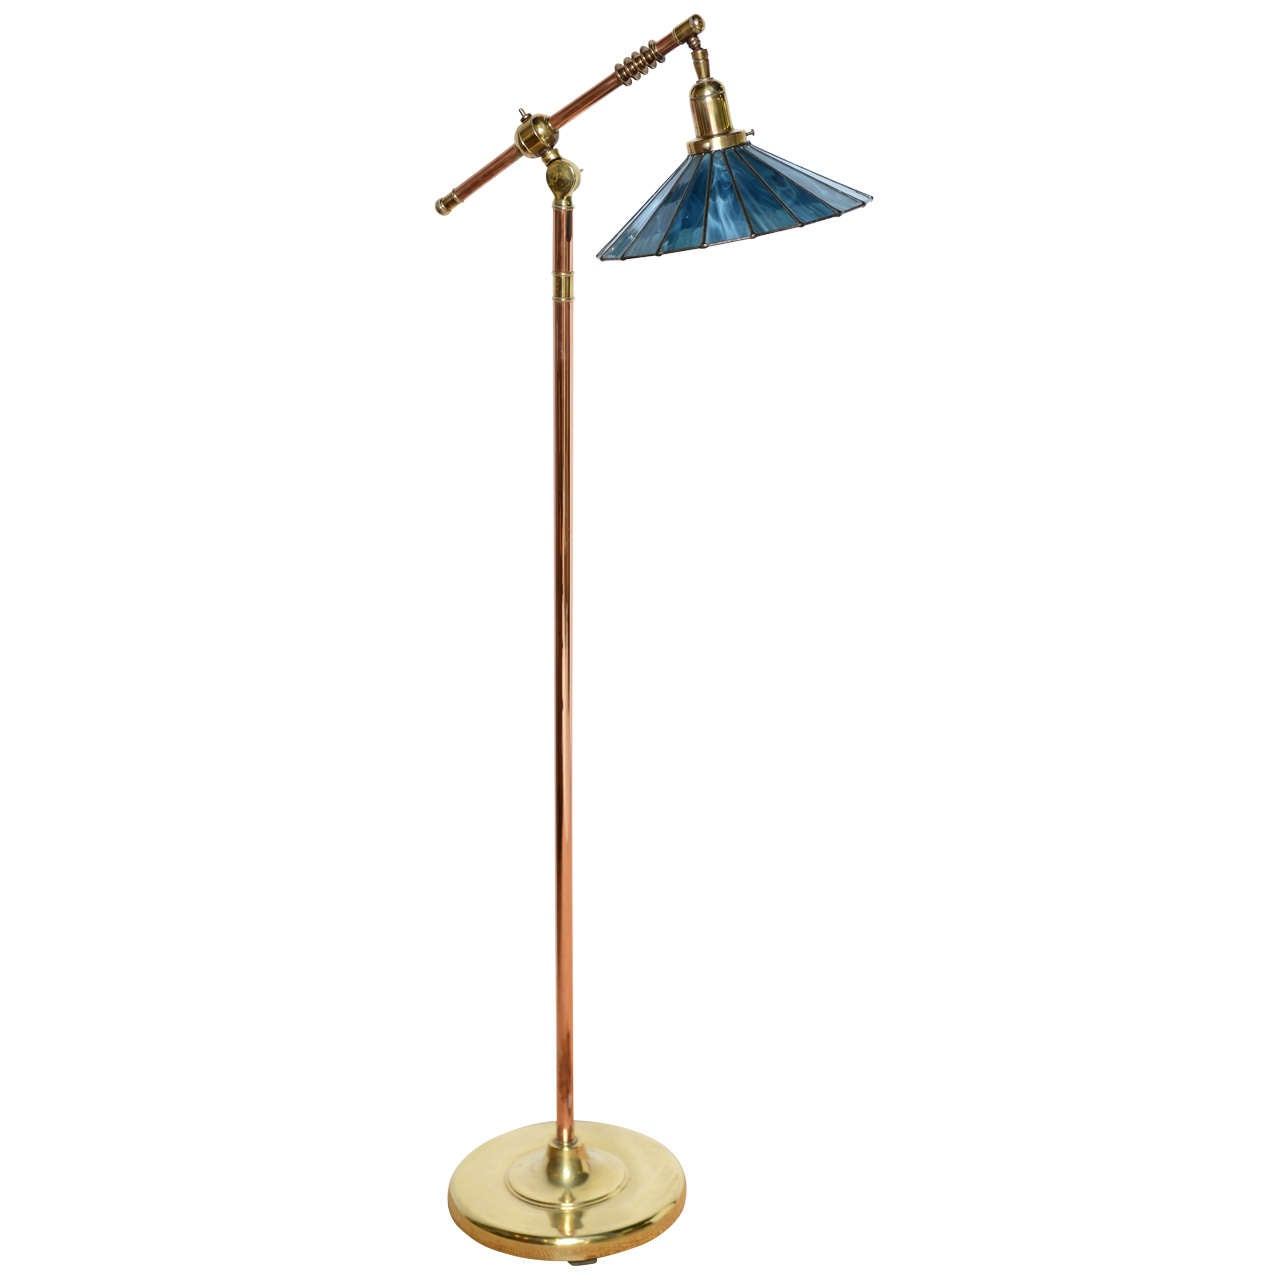 Craft Floor Lamps: Arts And Crafts Pharmacy Floor Lamp At 1stdibs